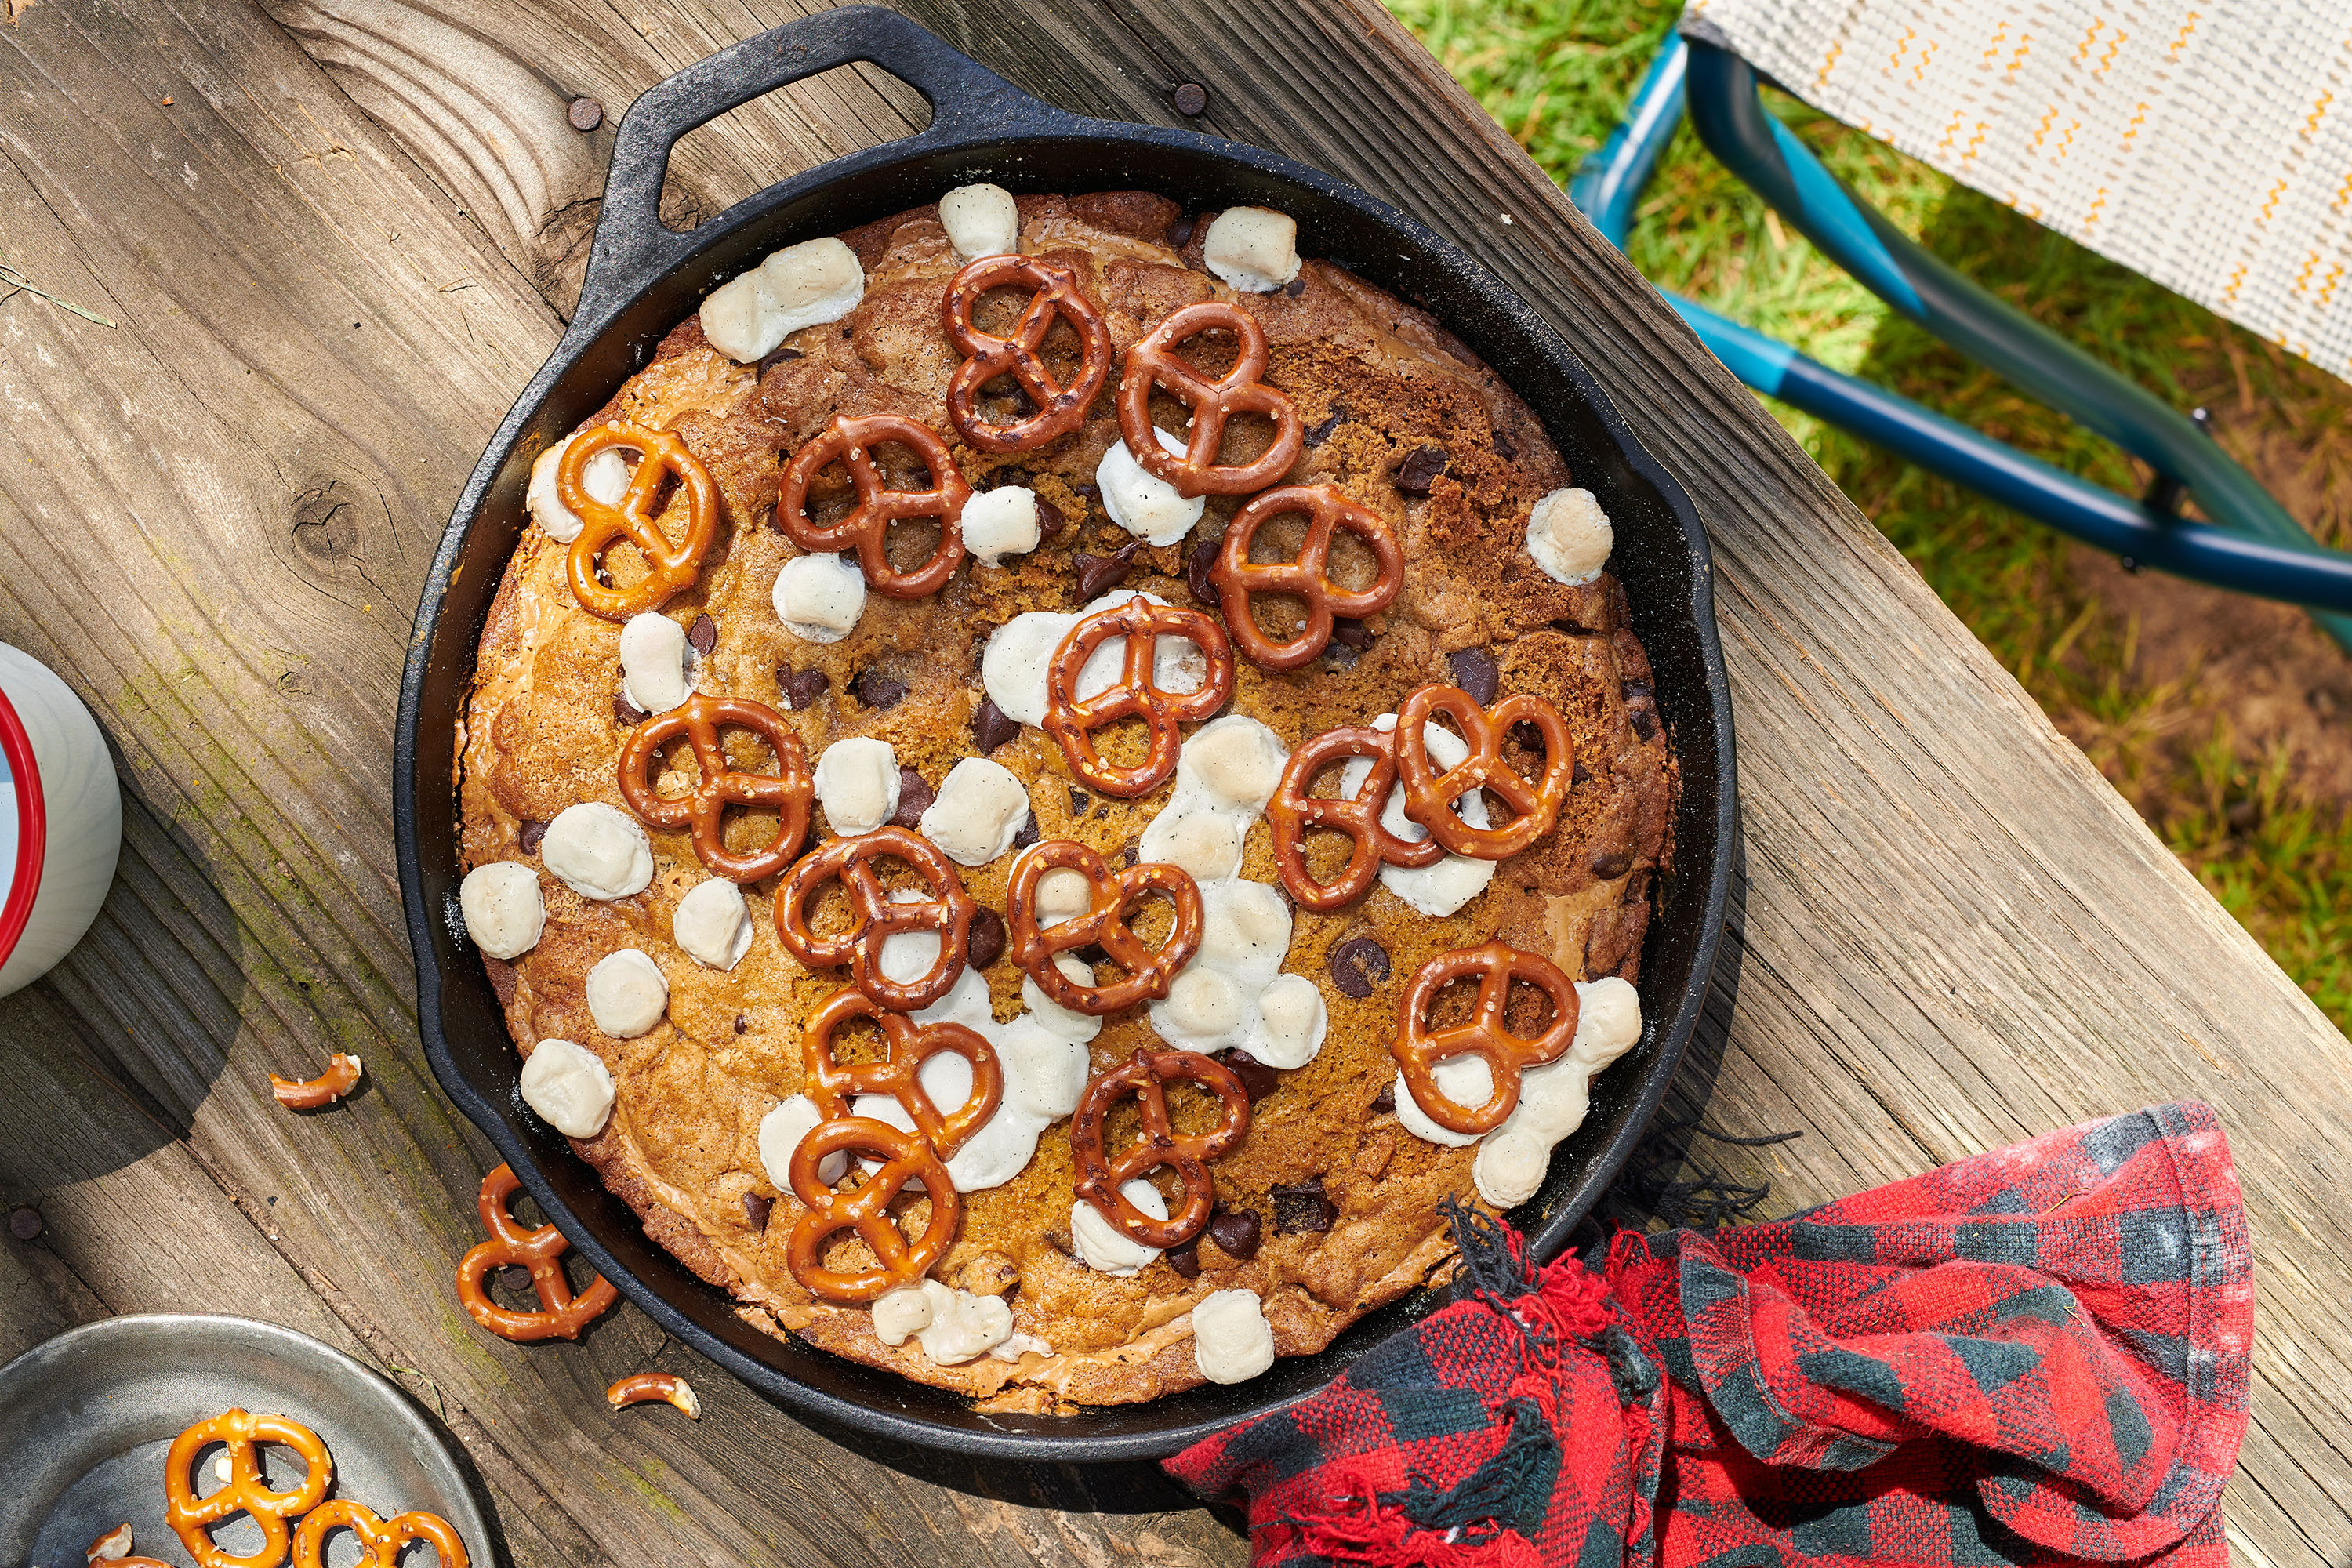 Cast-iron skillet containing a baked chocolate chip cookie with pretzels and marshmallows on top, seen from above on top of a picnic table.